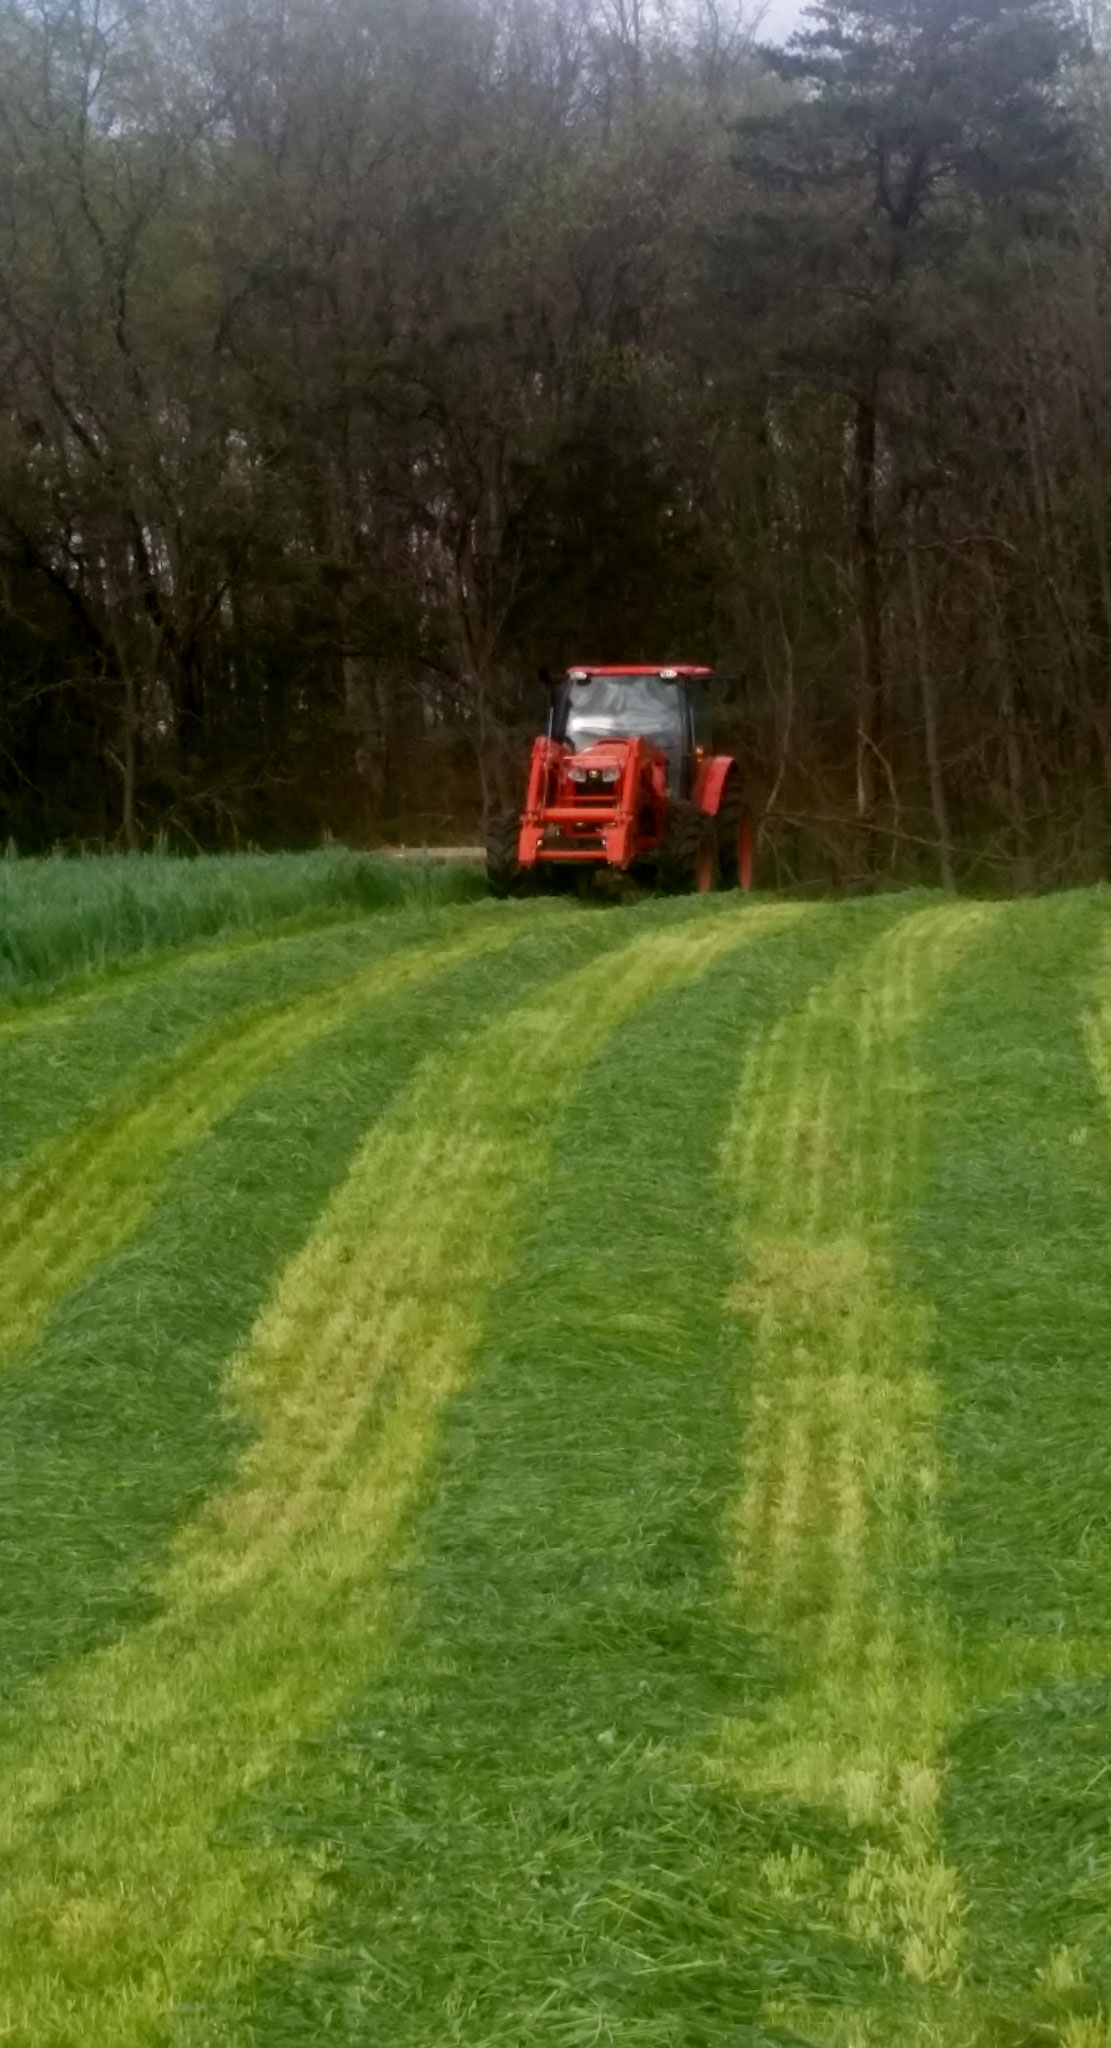 Making hay while the sun shines!